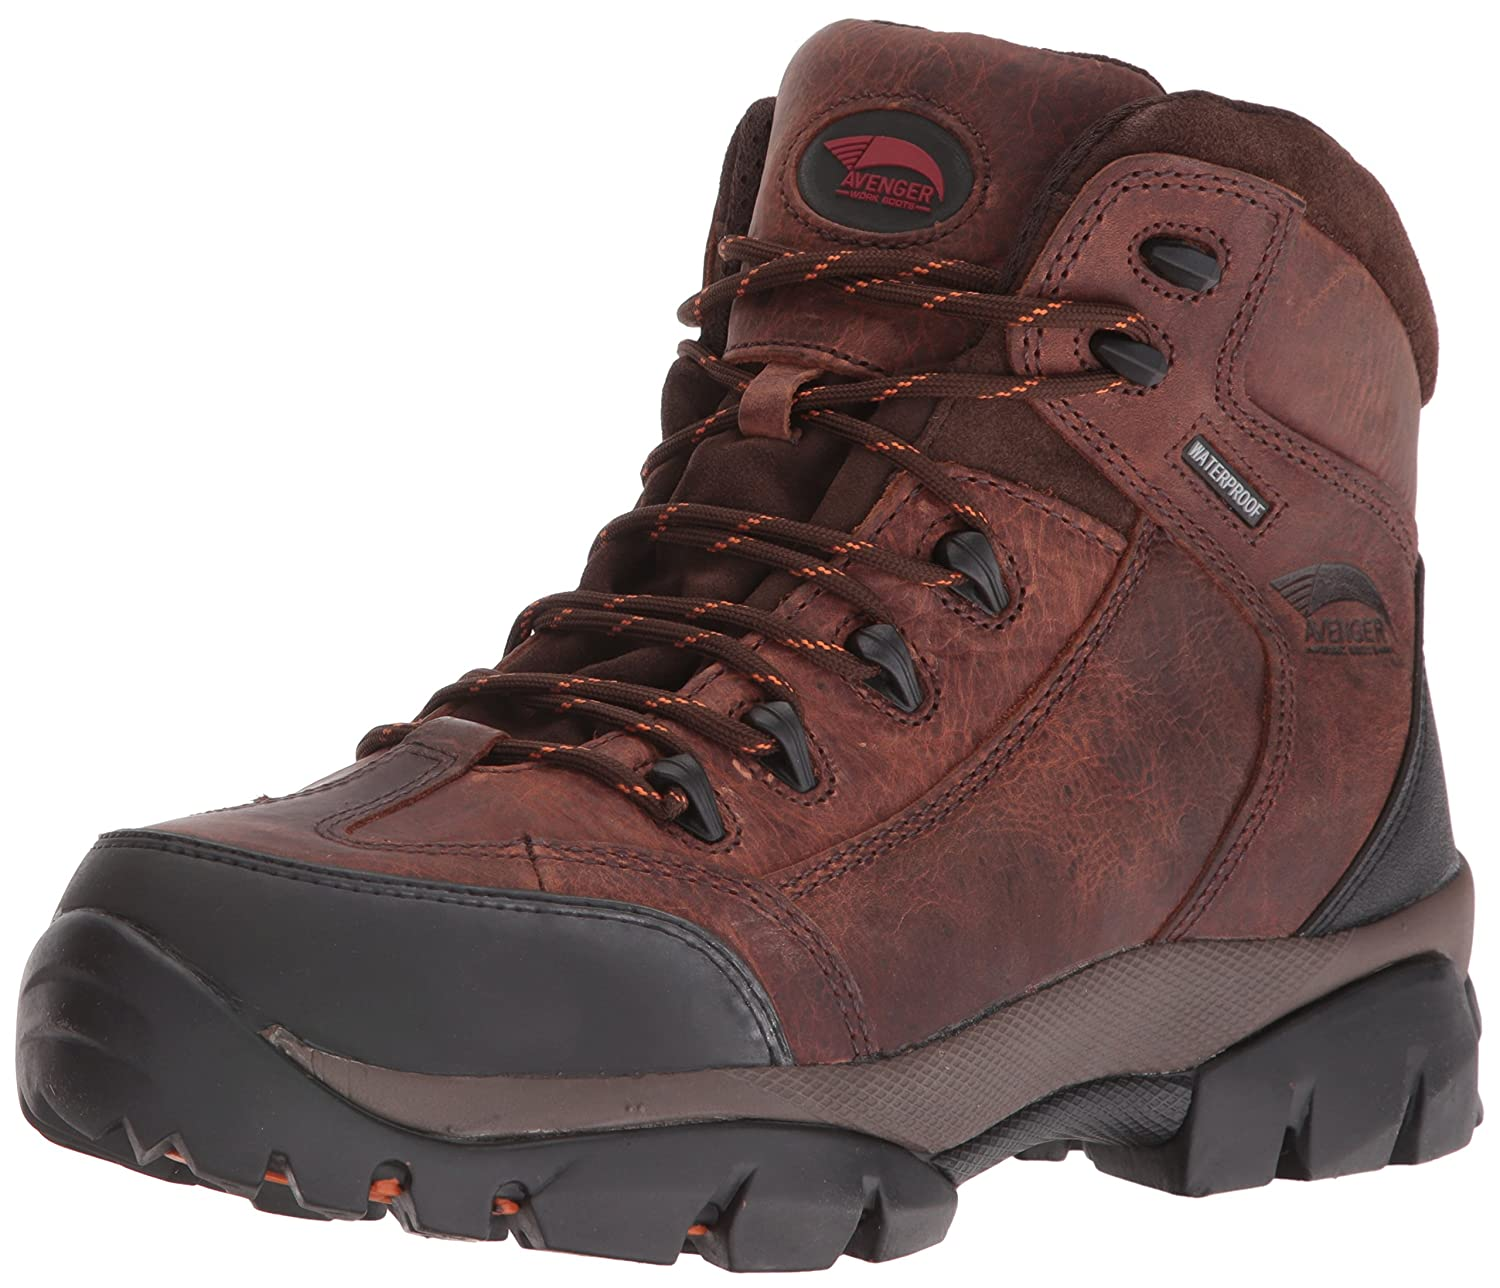 Avenger Safety Footwearメンズ7644レザーWaterproof Soft Toe NoメタルEH Hiker工業と建設Shoe ブラウン 13 2E US 13 2E USブラウン B007MLV7IY